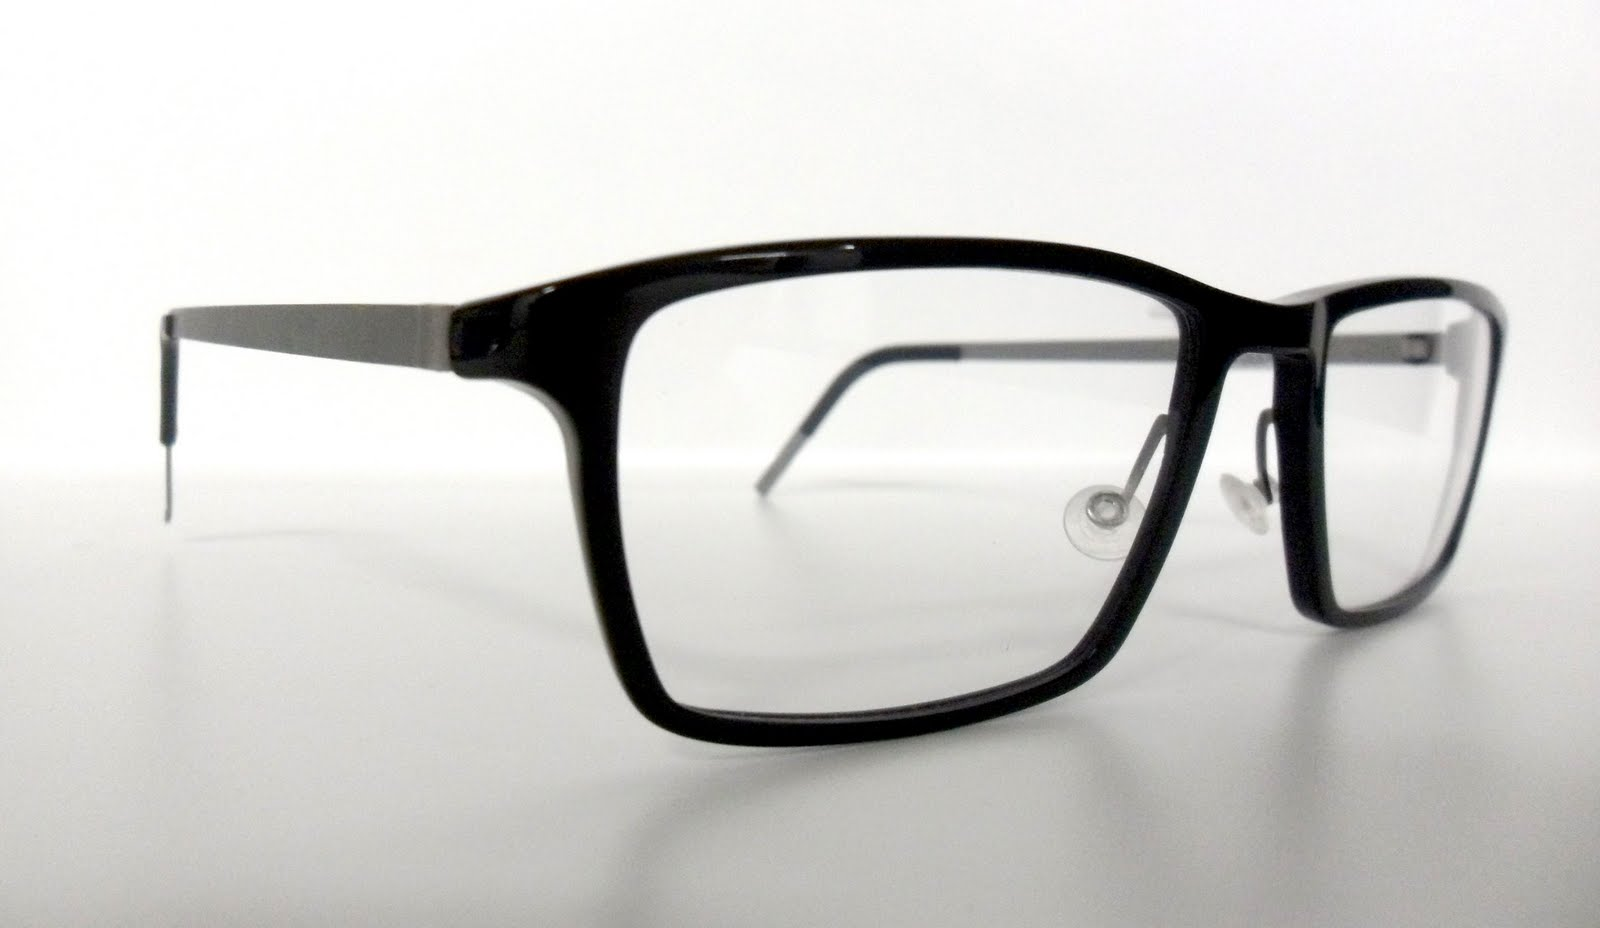 LINDBERG RIMLESS EYEGLASSES Glass Eye